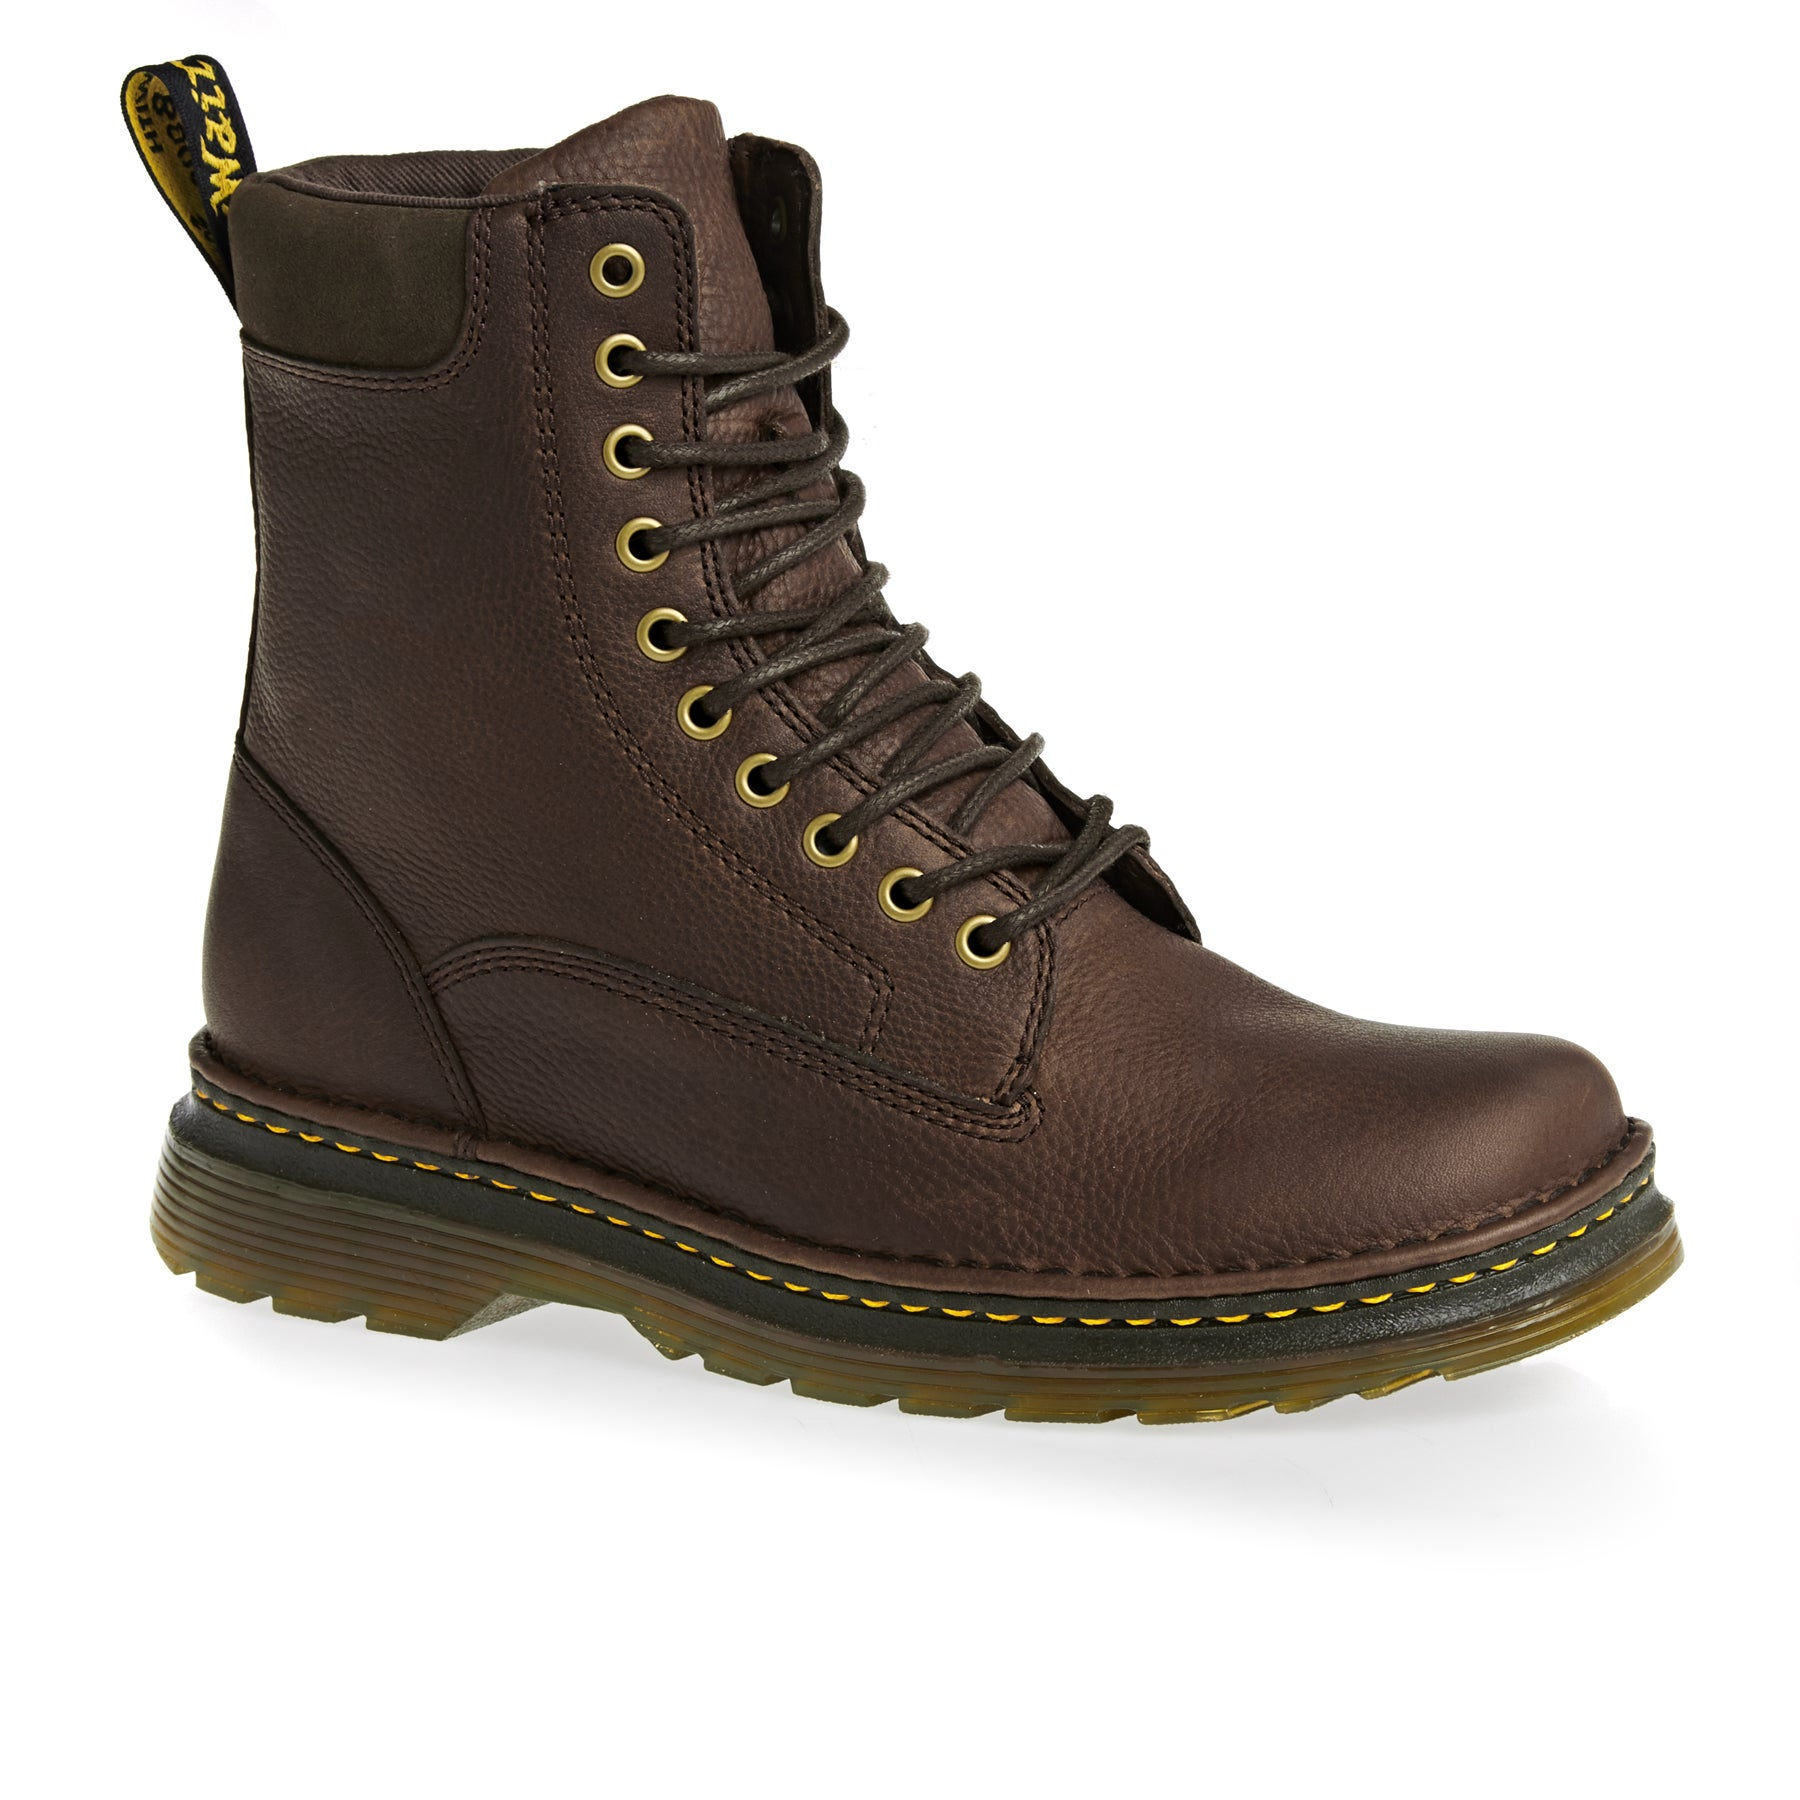 Bottes Dr Martens Vincent - Dark Brown Grizzly